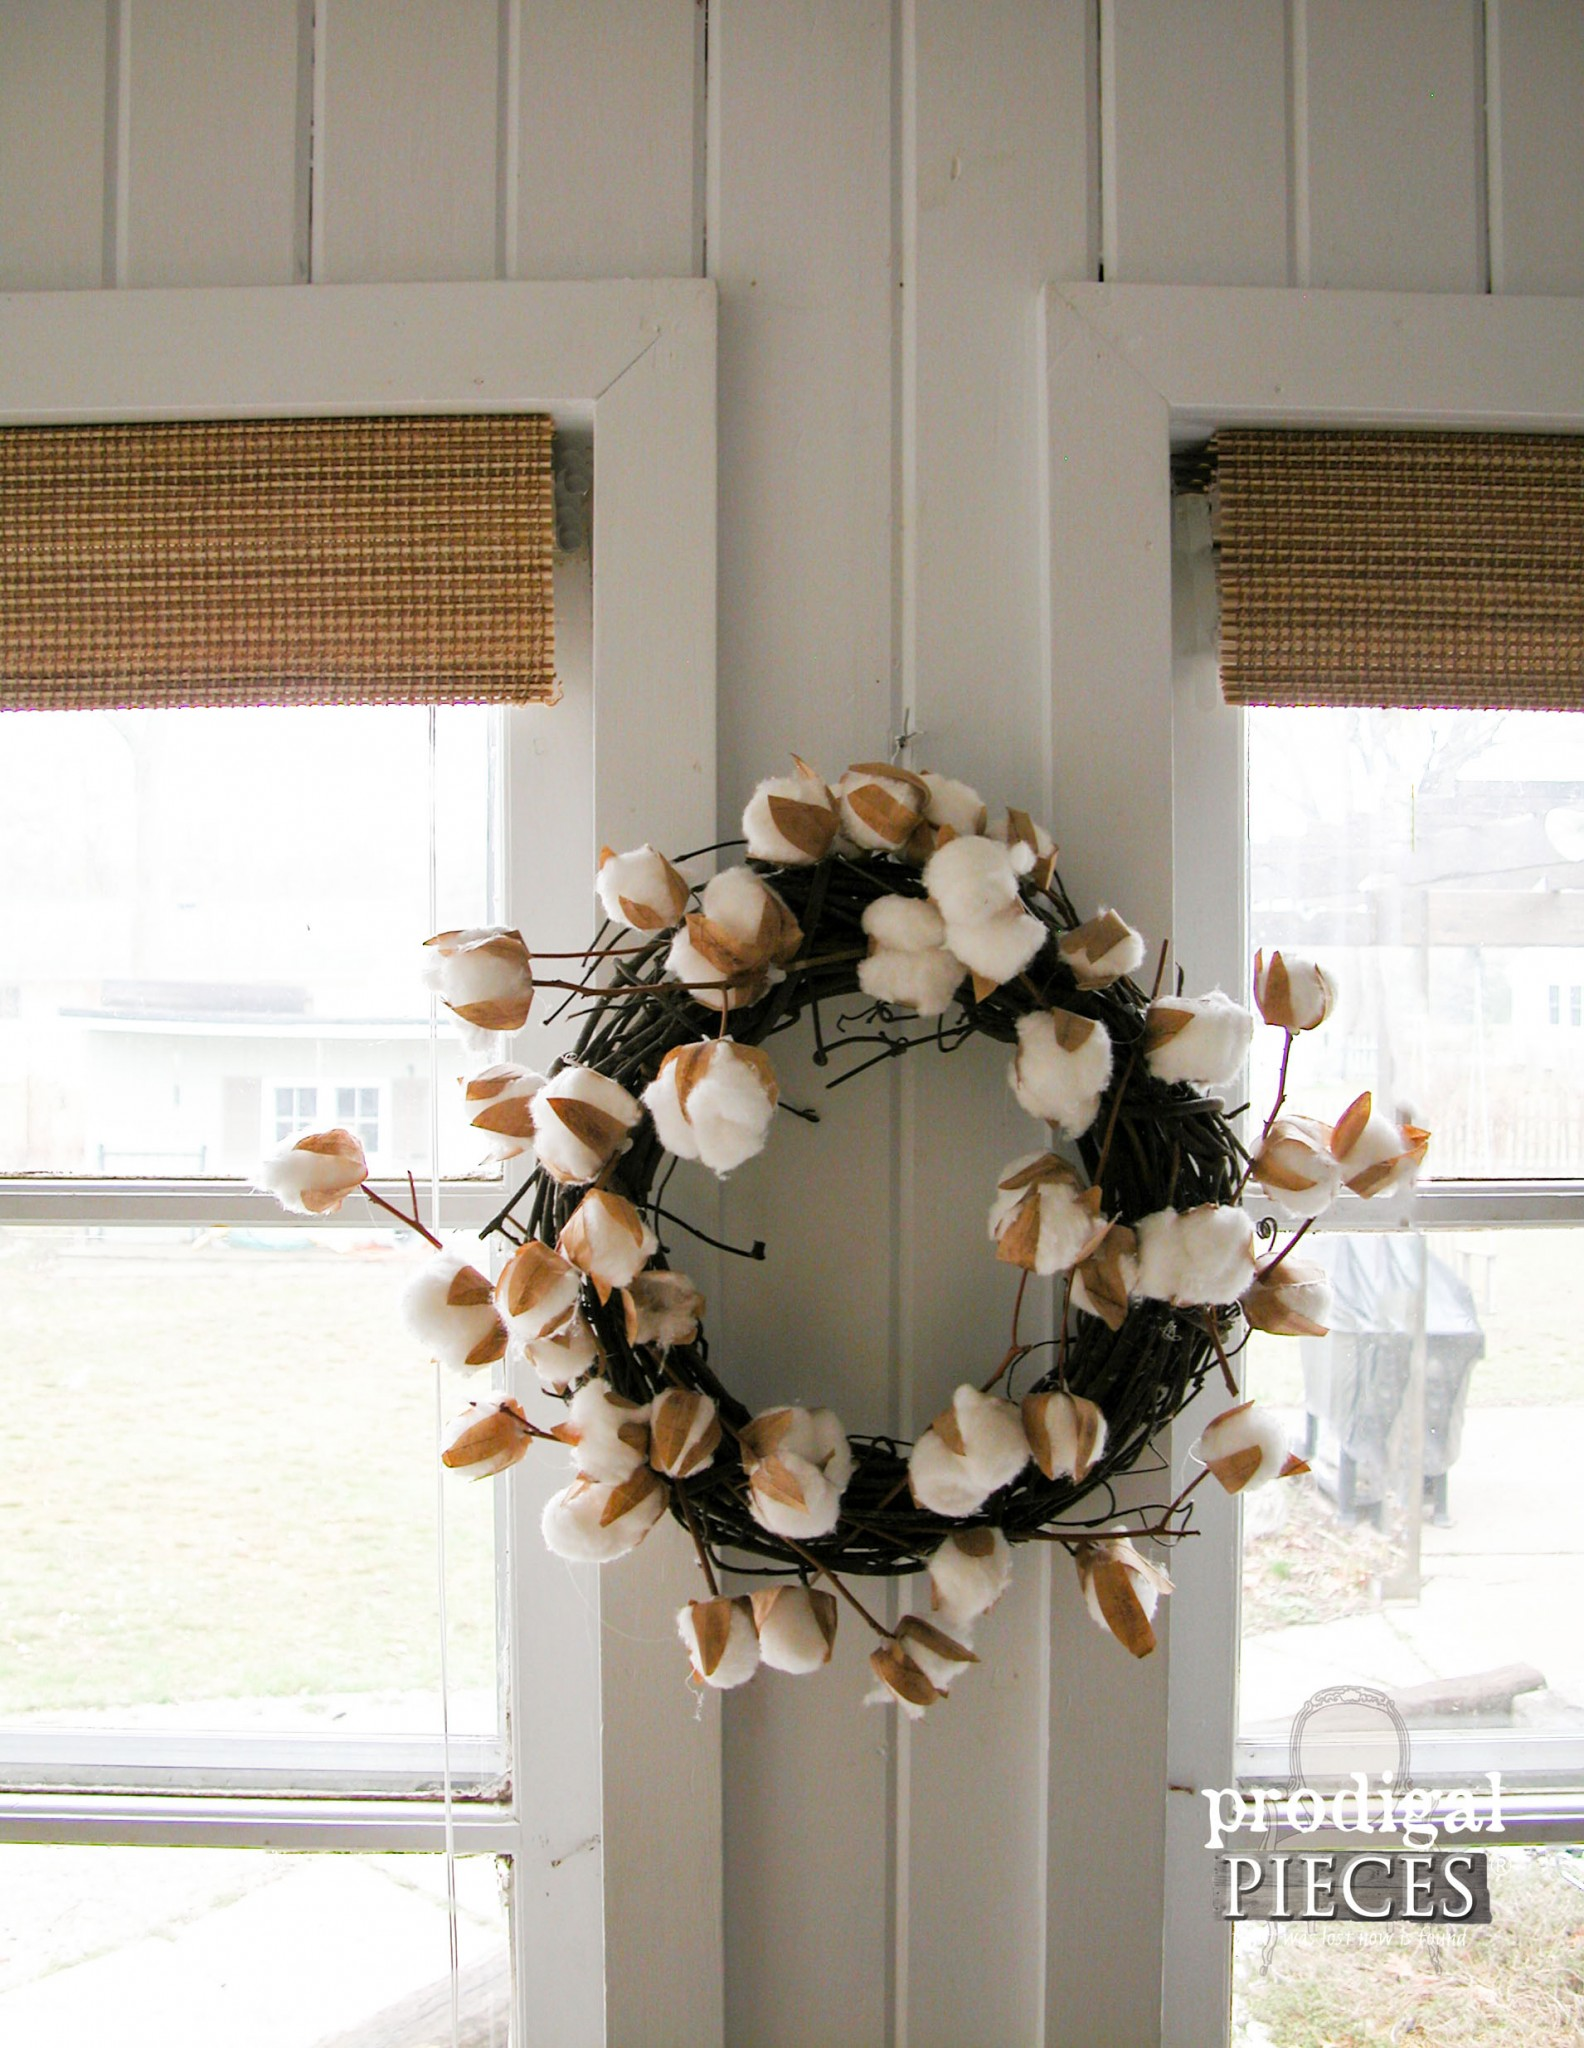 DIY Budget Window Treatment with Faux Bamboo Shades | Prodigal Pieces | www.prodigalpieces.com